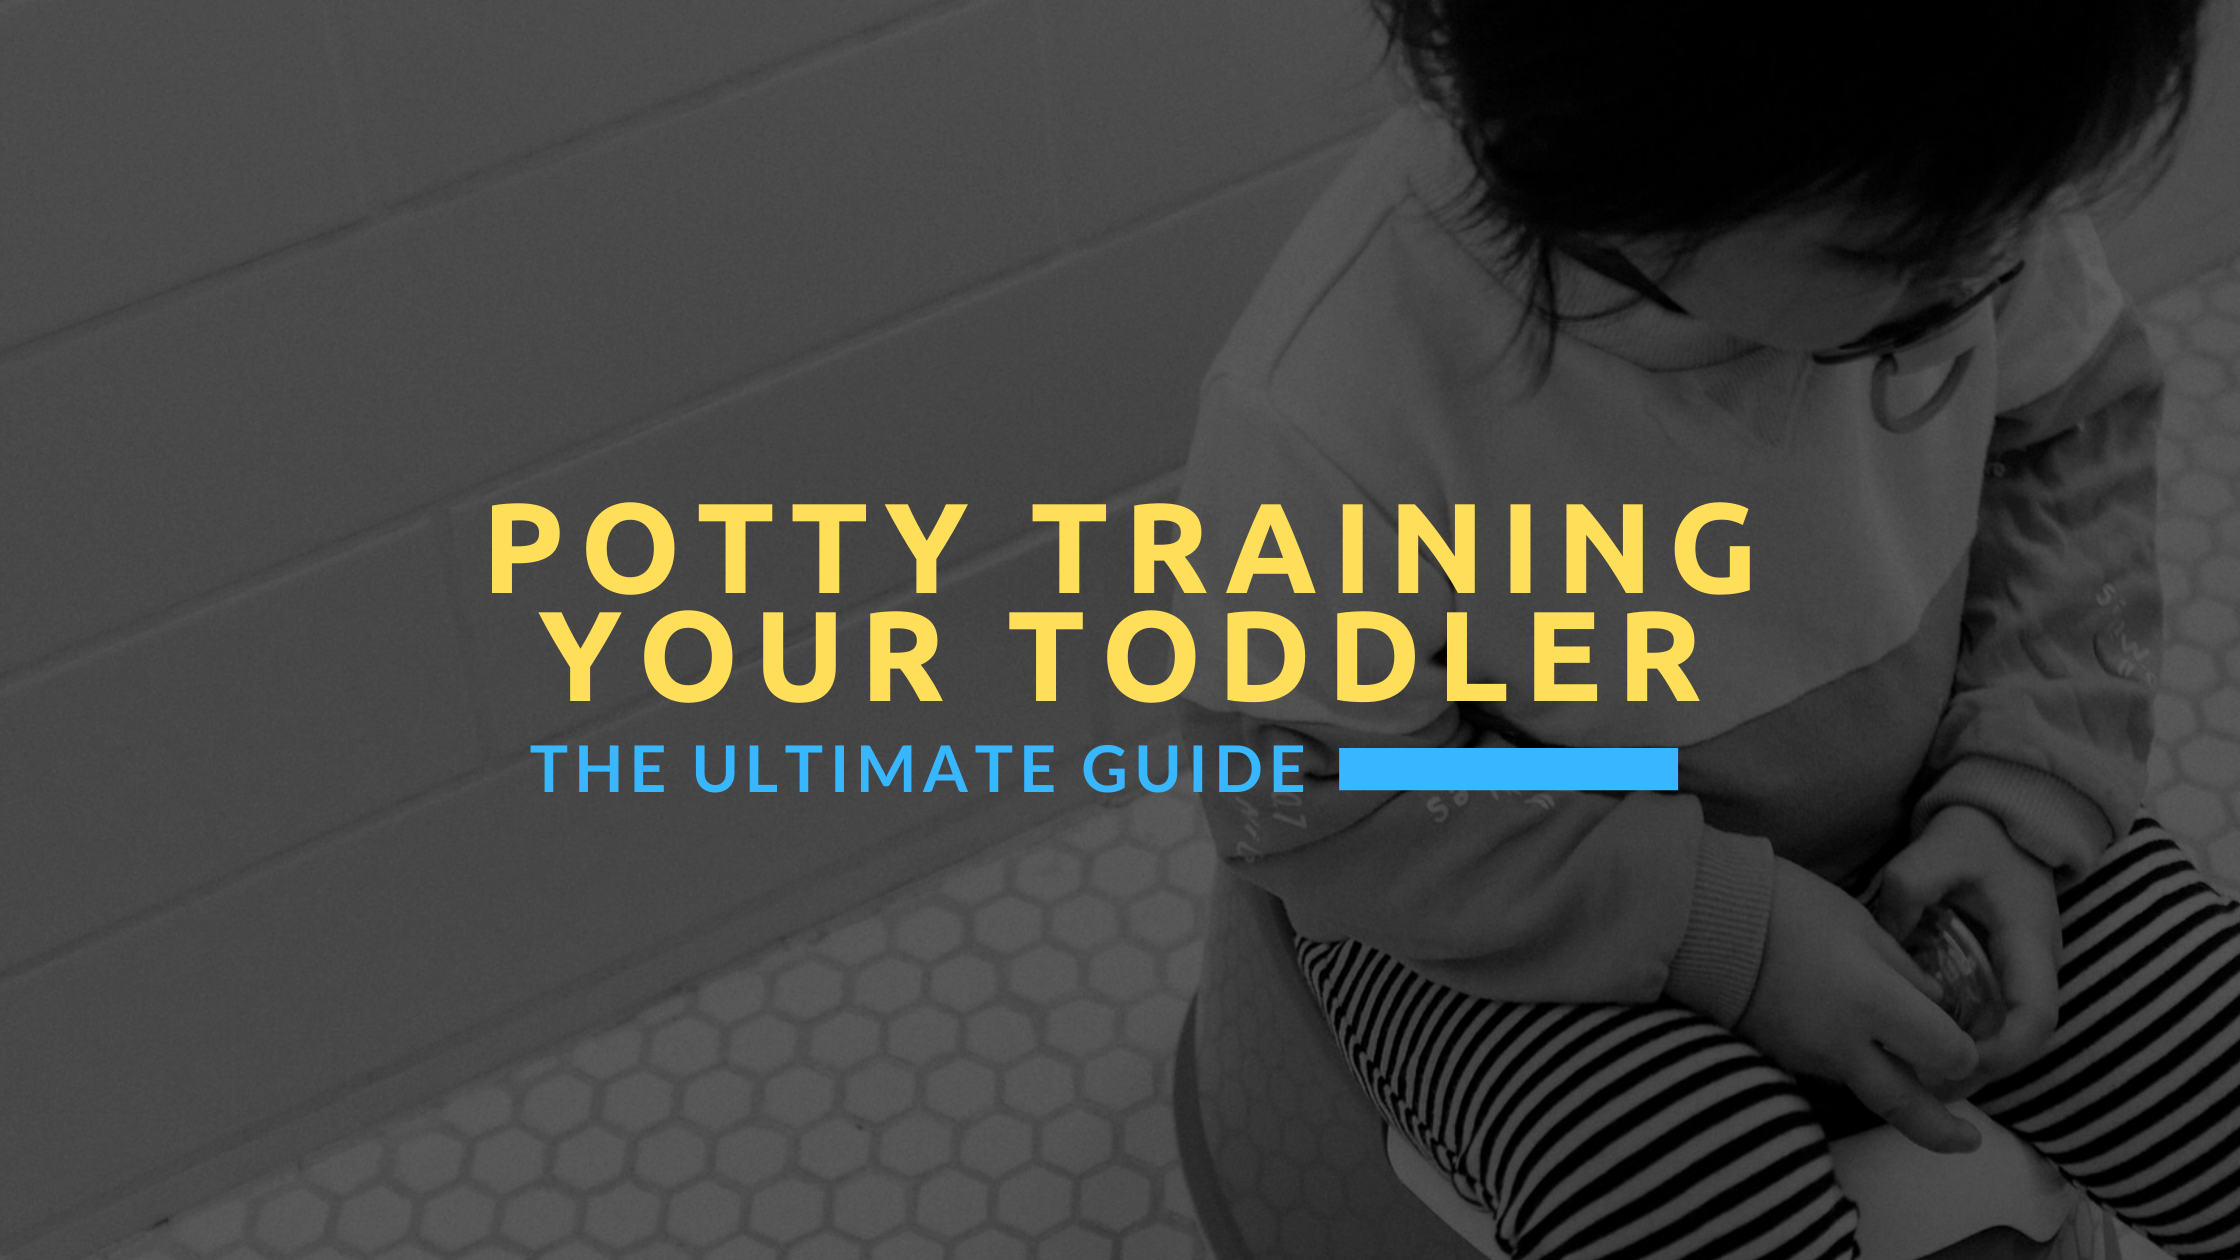 Toddler Potty Training With Caption of Potty Training Your Toddler, The Ultimate Guide